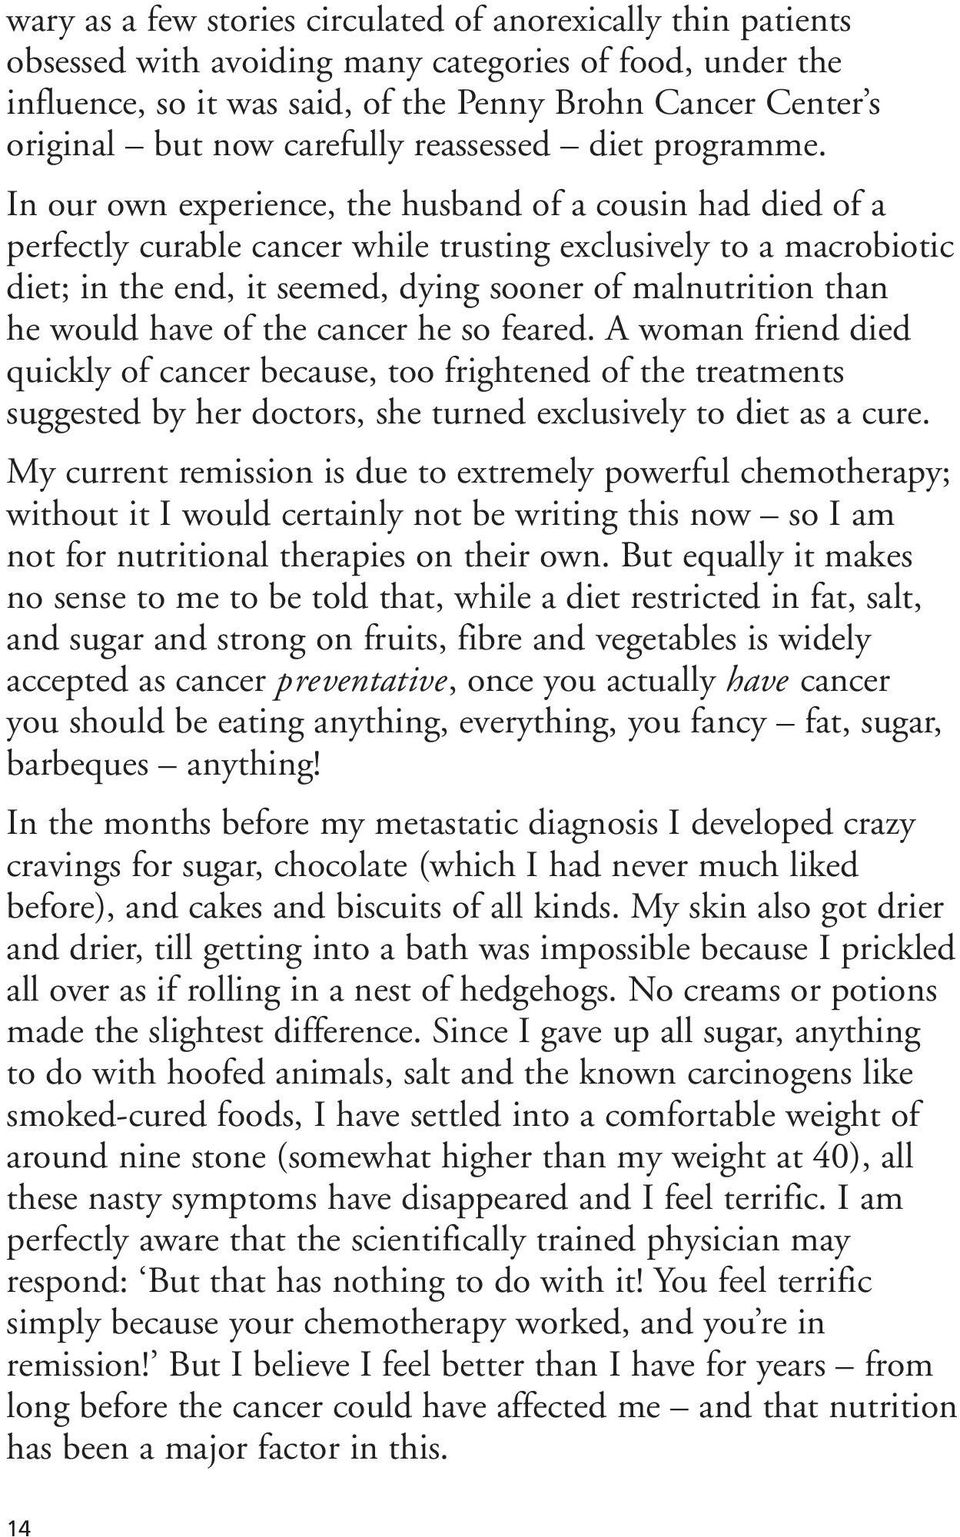 In our own experience, the husband of a cousin had died of a perfectly curable cancer while trusting exclusively to a macrobiotic diet; in the end, it seemed, dying sooner of malnutrition than he